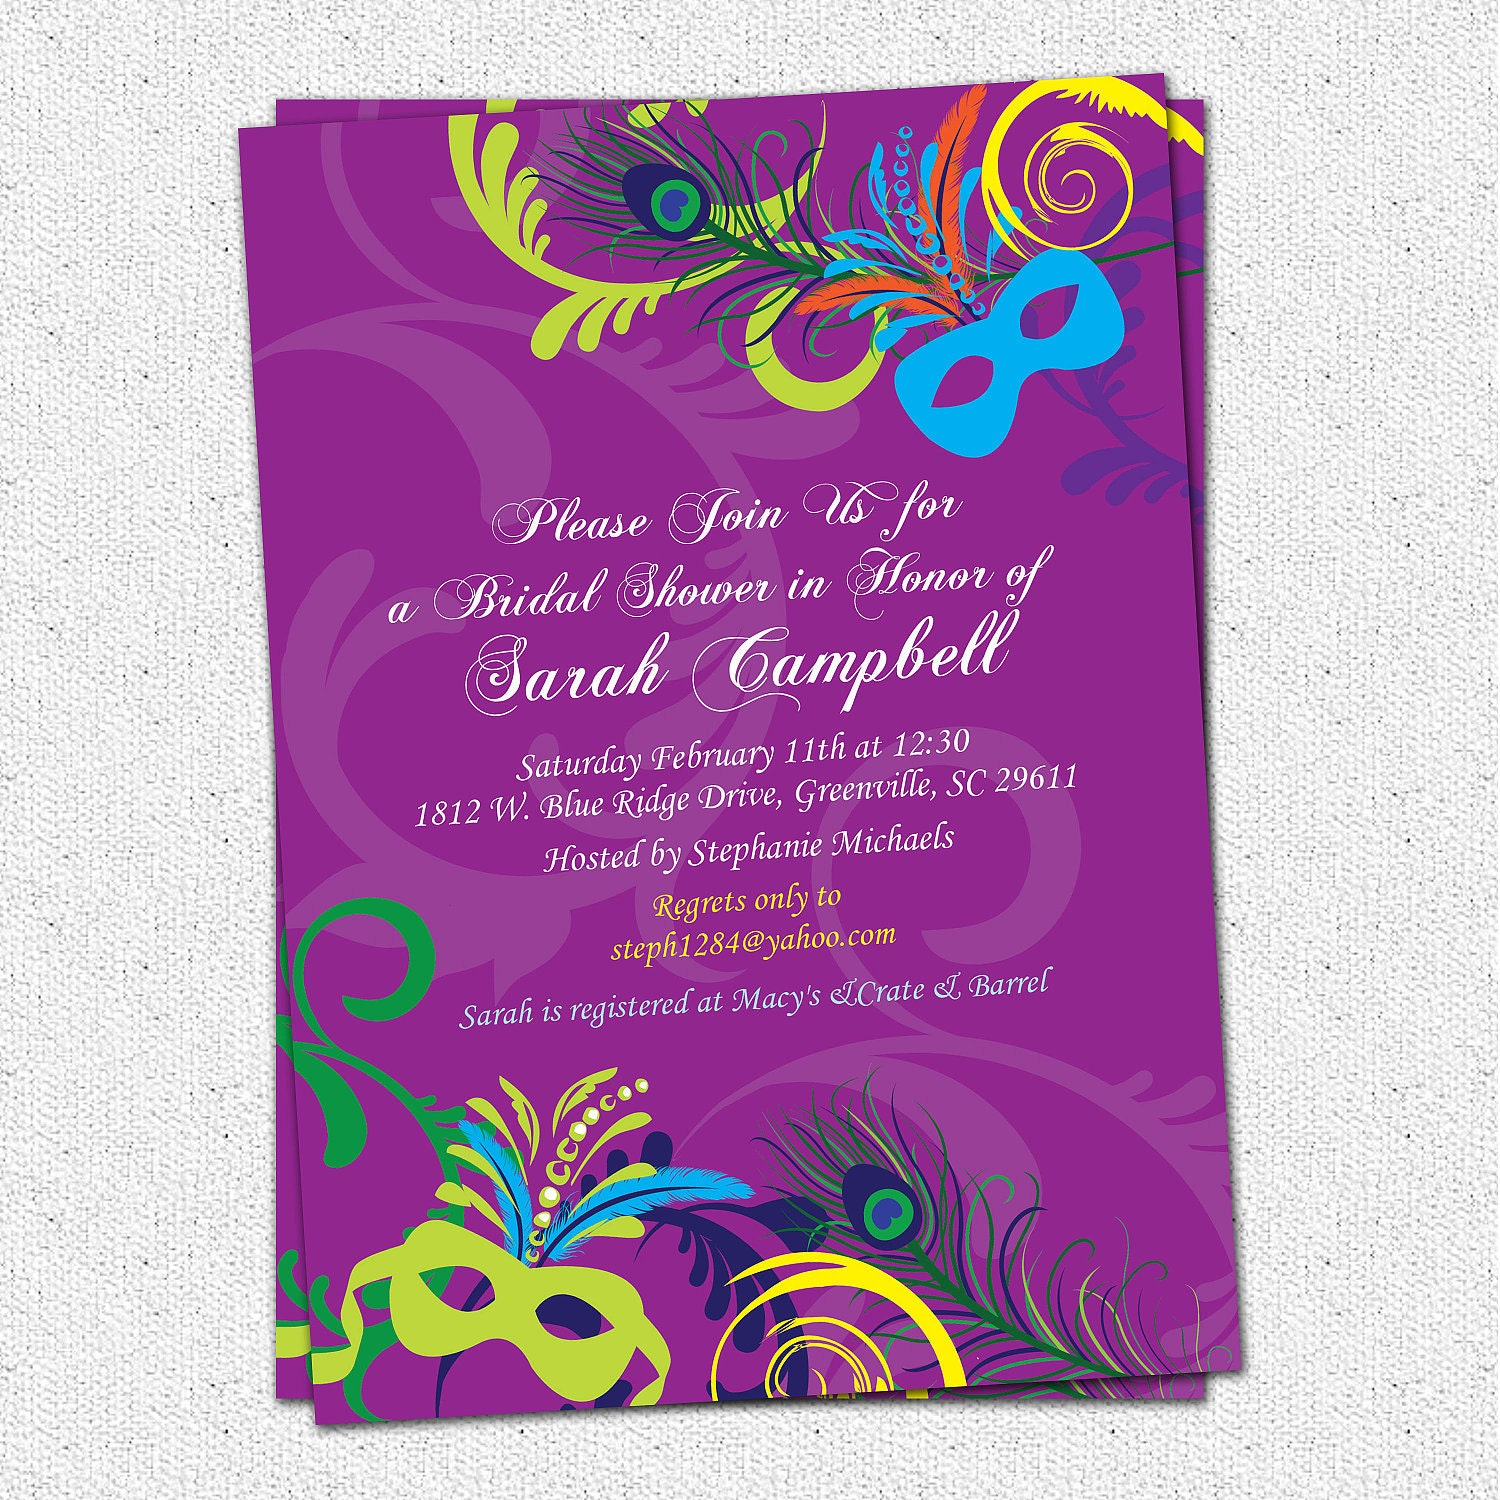 Masquerade Ball Sweet 16 Invitations with luxury invitation example